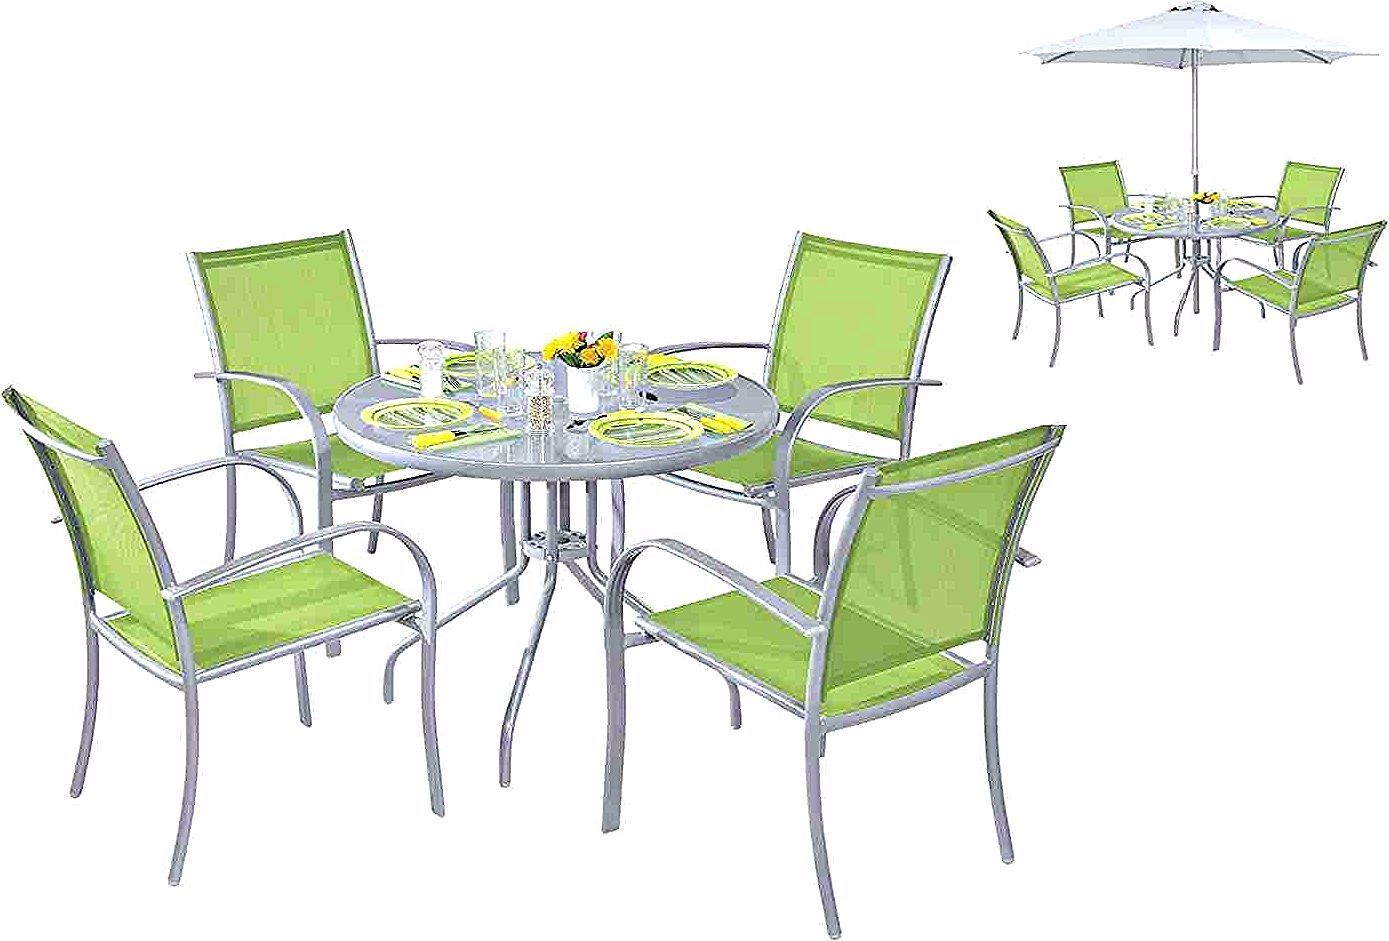 26 Paisible Ensemble Jardin Pas Cher In 2020 Outdoor Furniture